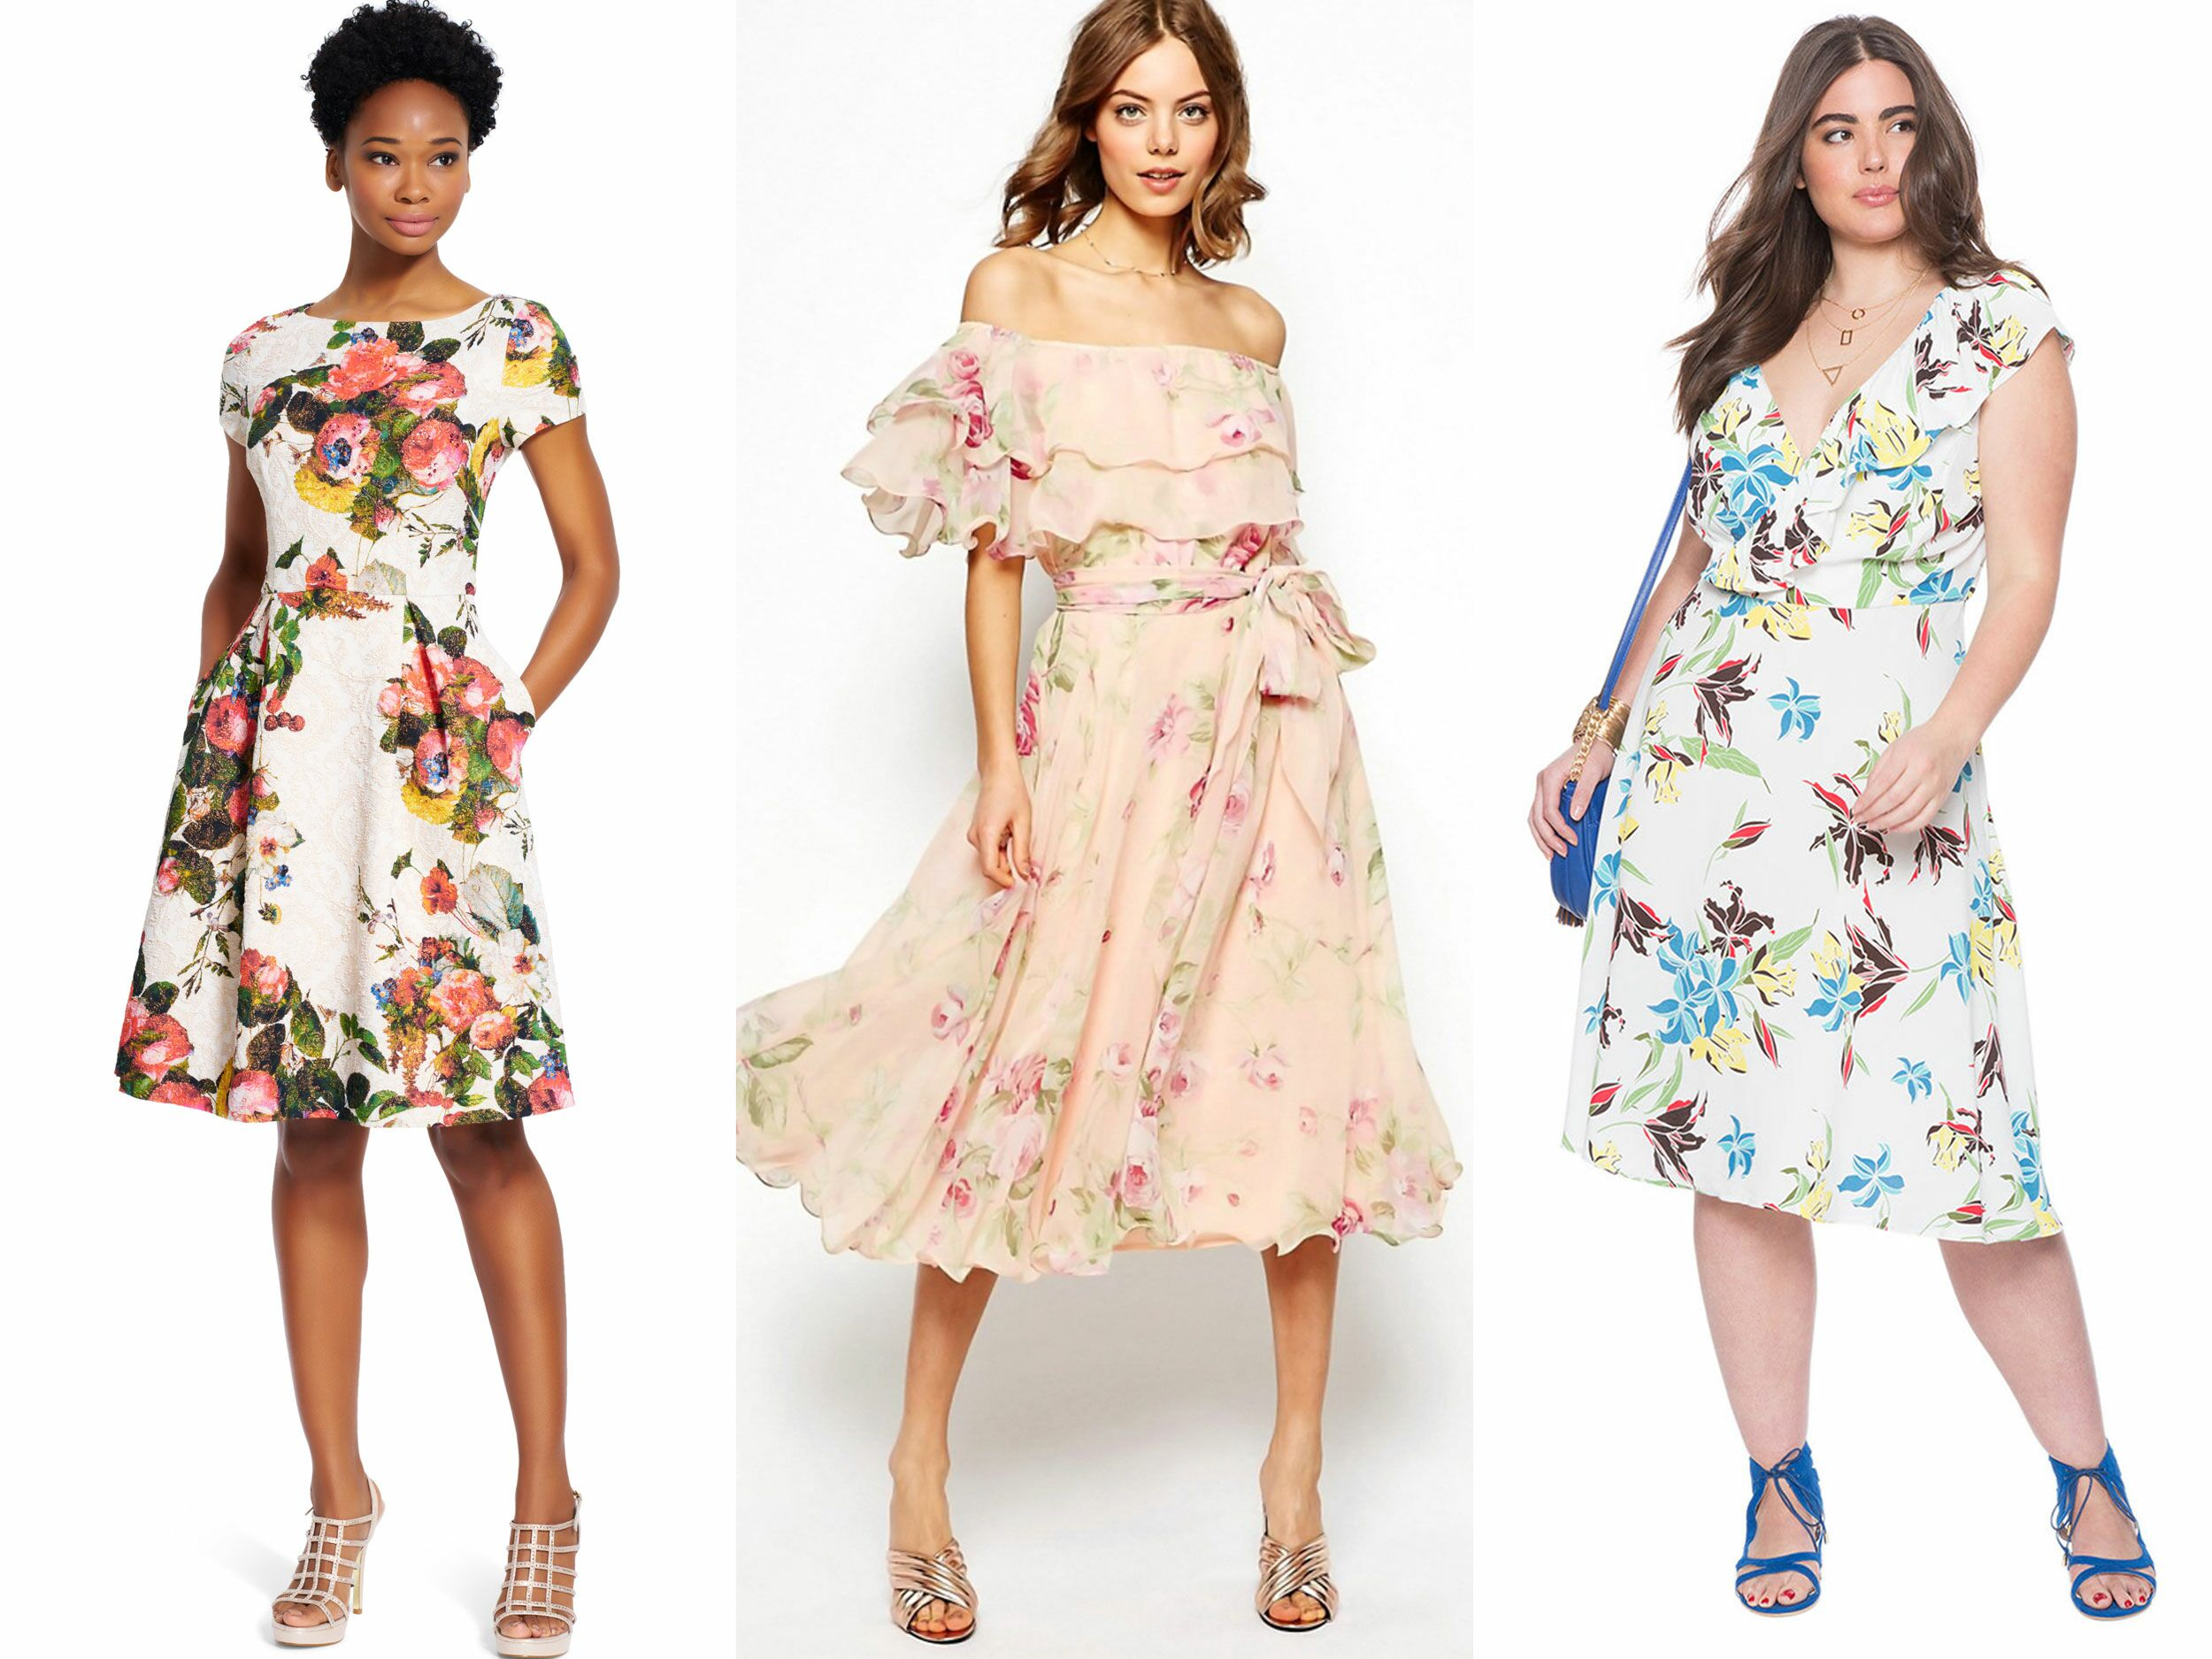 Guest attire floral dresses perfect for summer weddings for Floral dresses for weddings